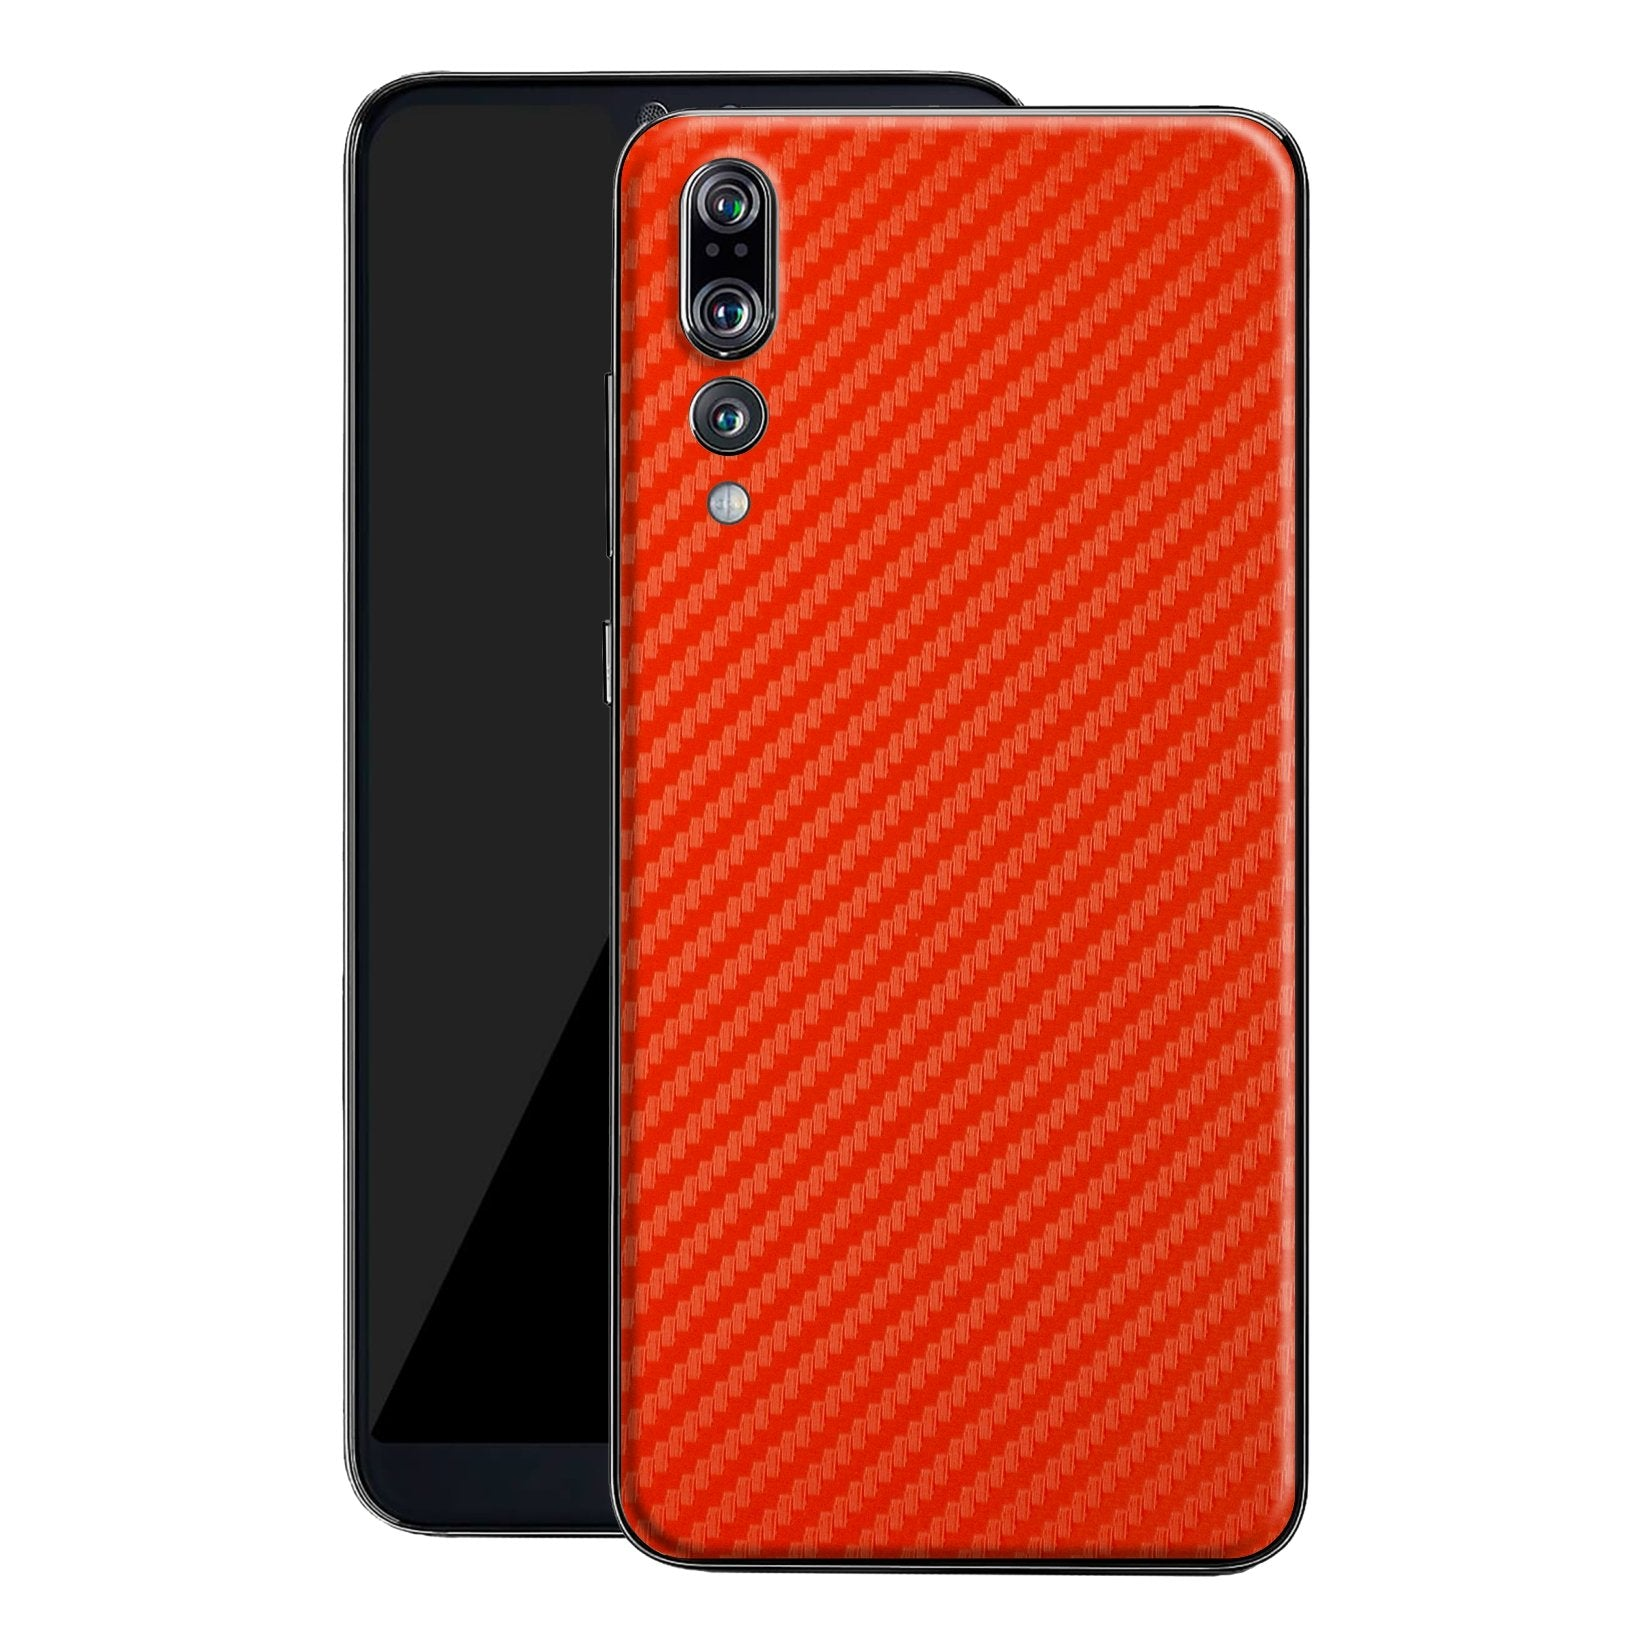 Huawei P20 PRO 3D Textured Red Carbon Fibre Fiber Skin, Decal, Wrap, Protector, Cover by EasySkinz | EasySkinz.com